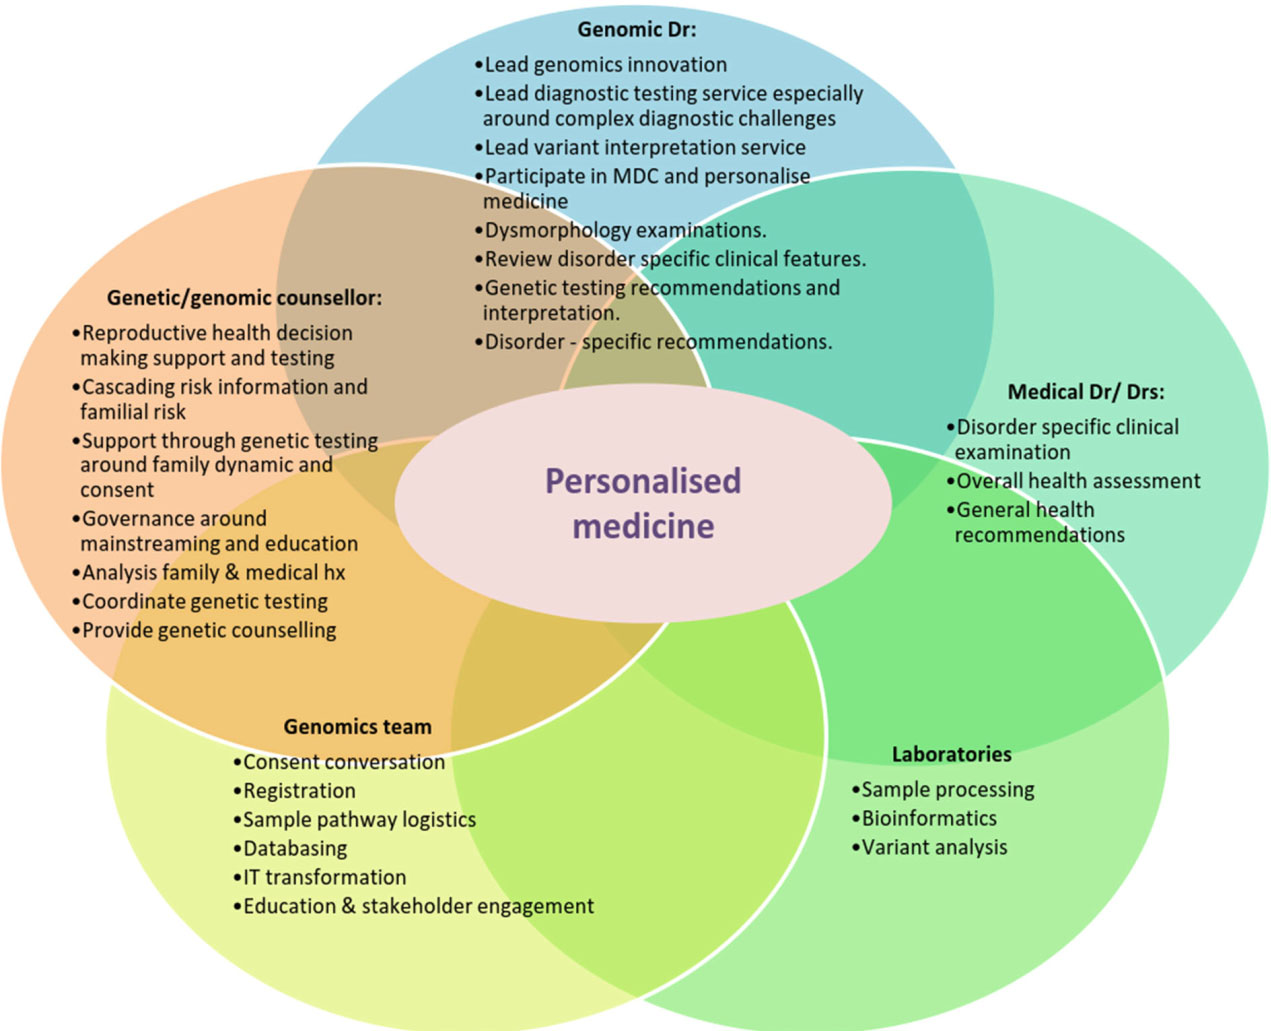 pros and cons of personalized medicine